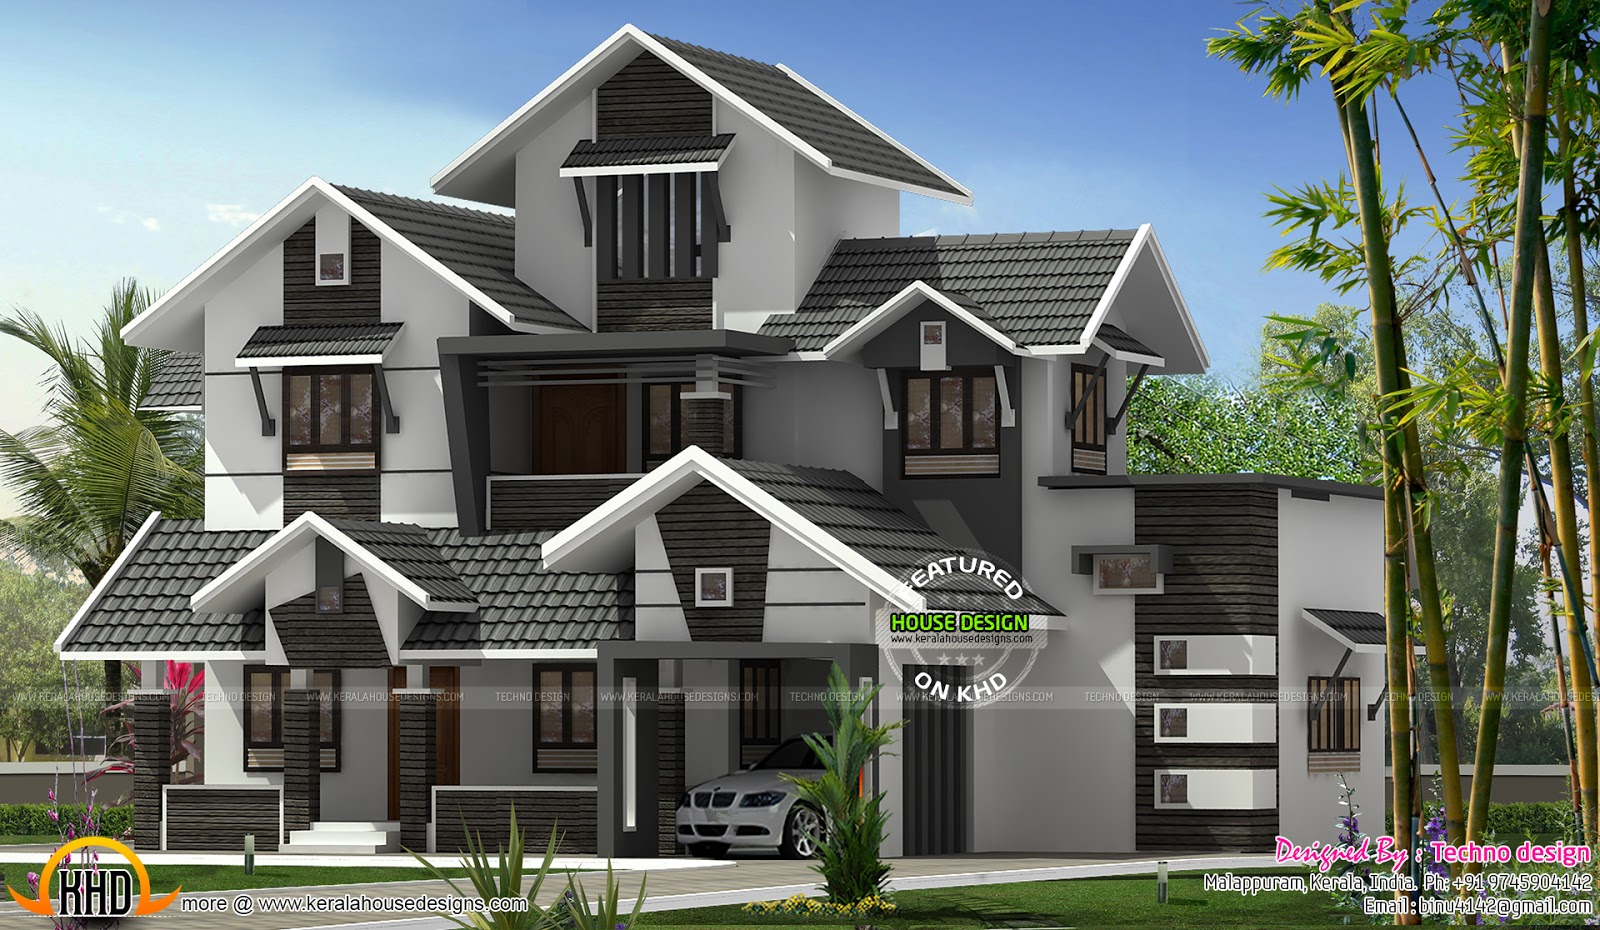 Modern kerala home design kerala home design and floor plans for New home design in kerala